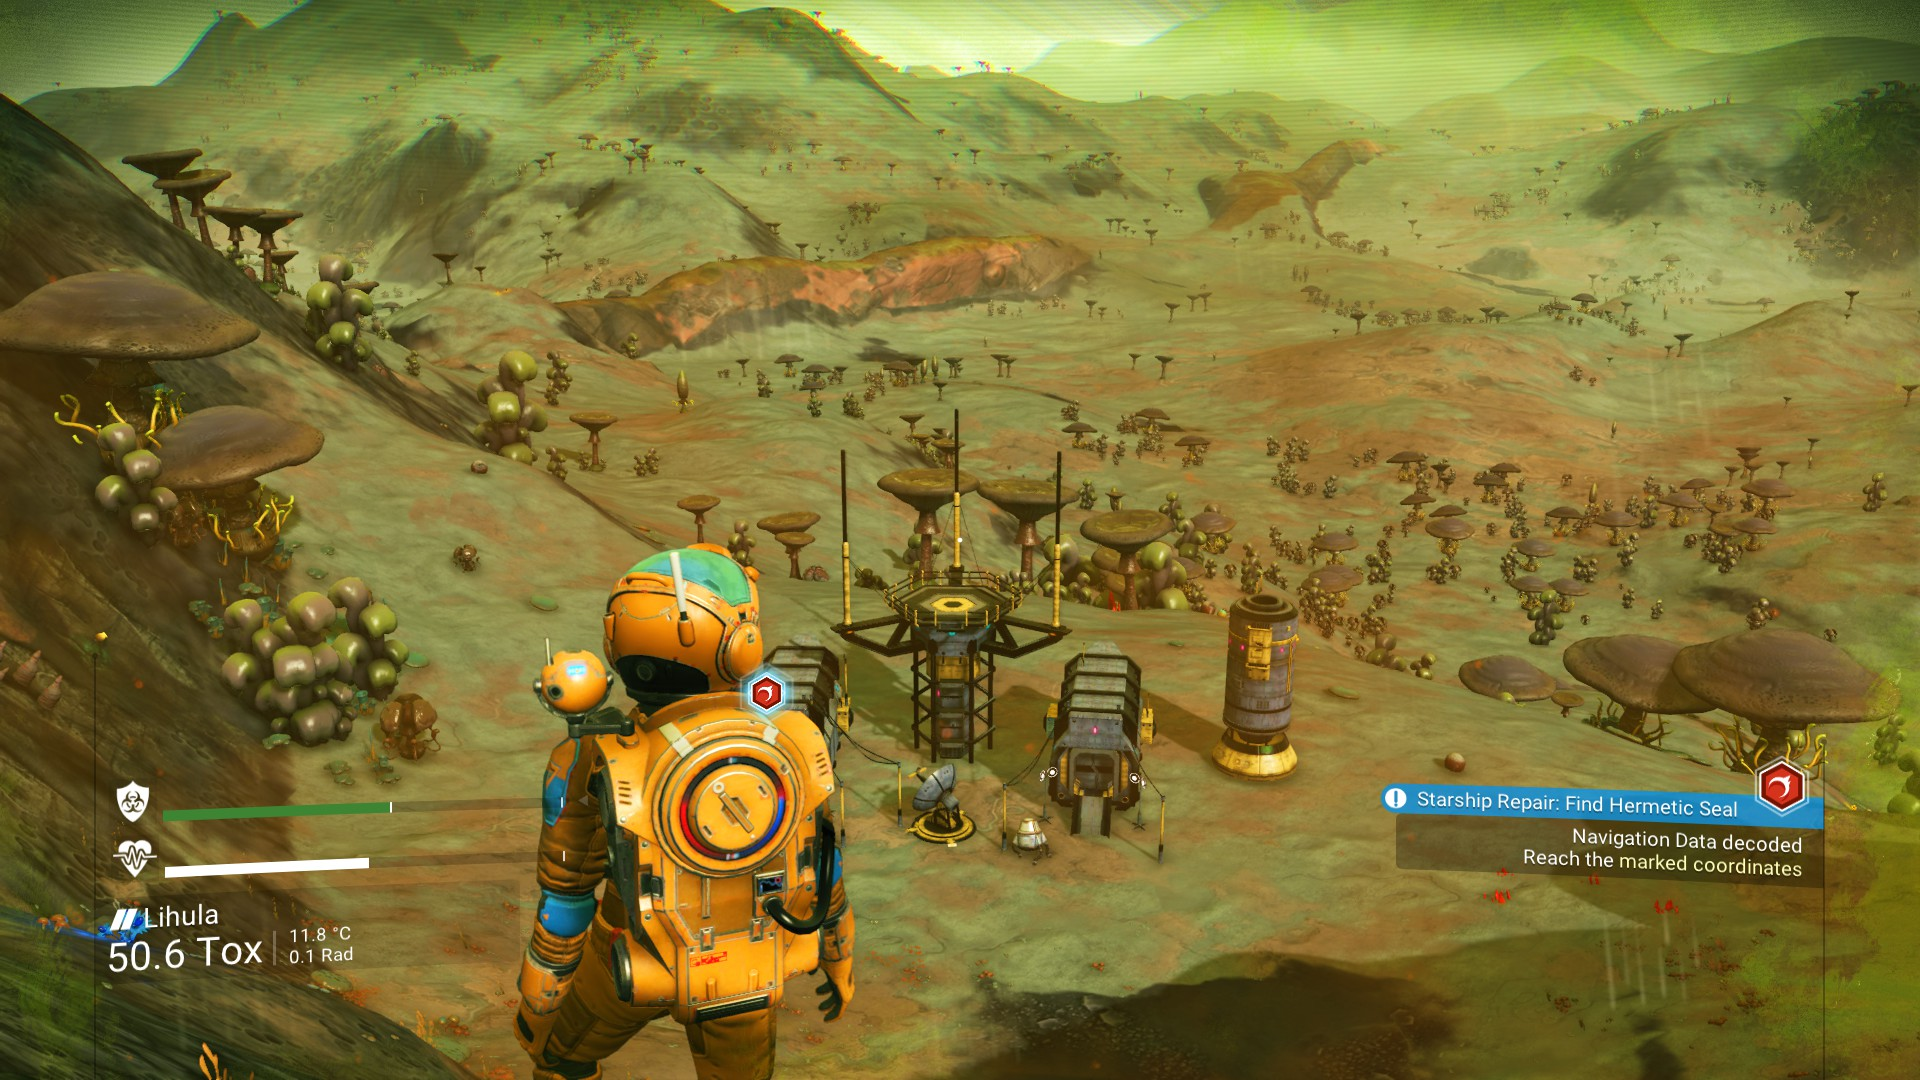 No Man's Sky runs very nicely on Linux with Steam Play, huge online